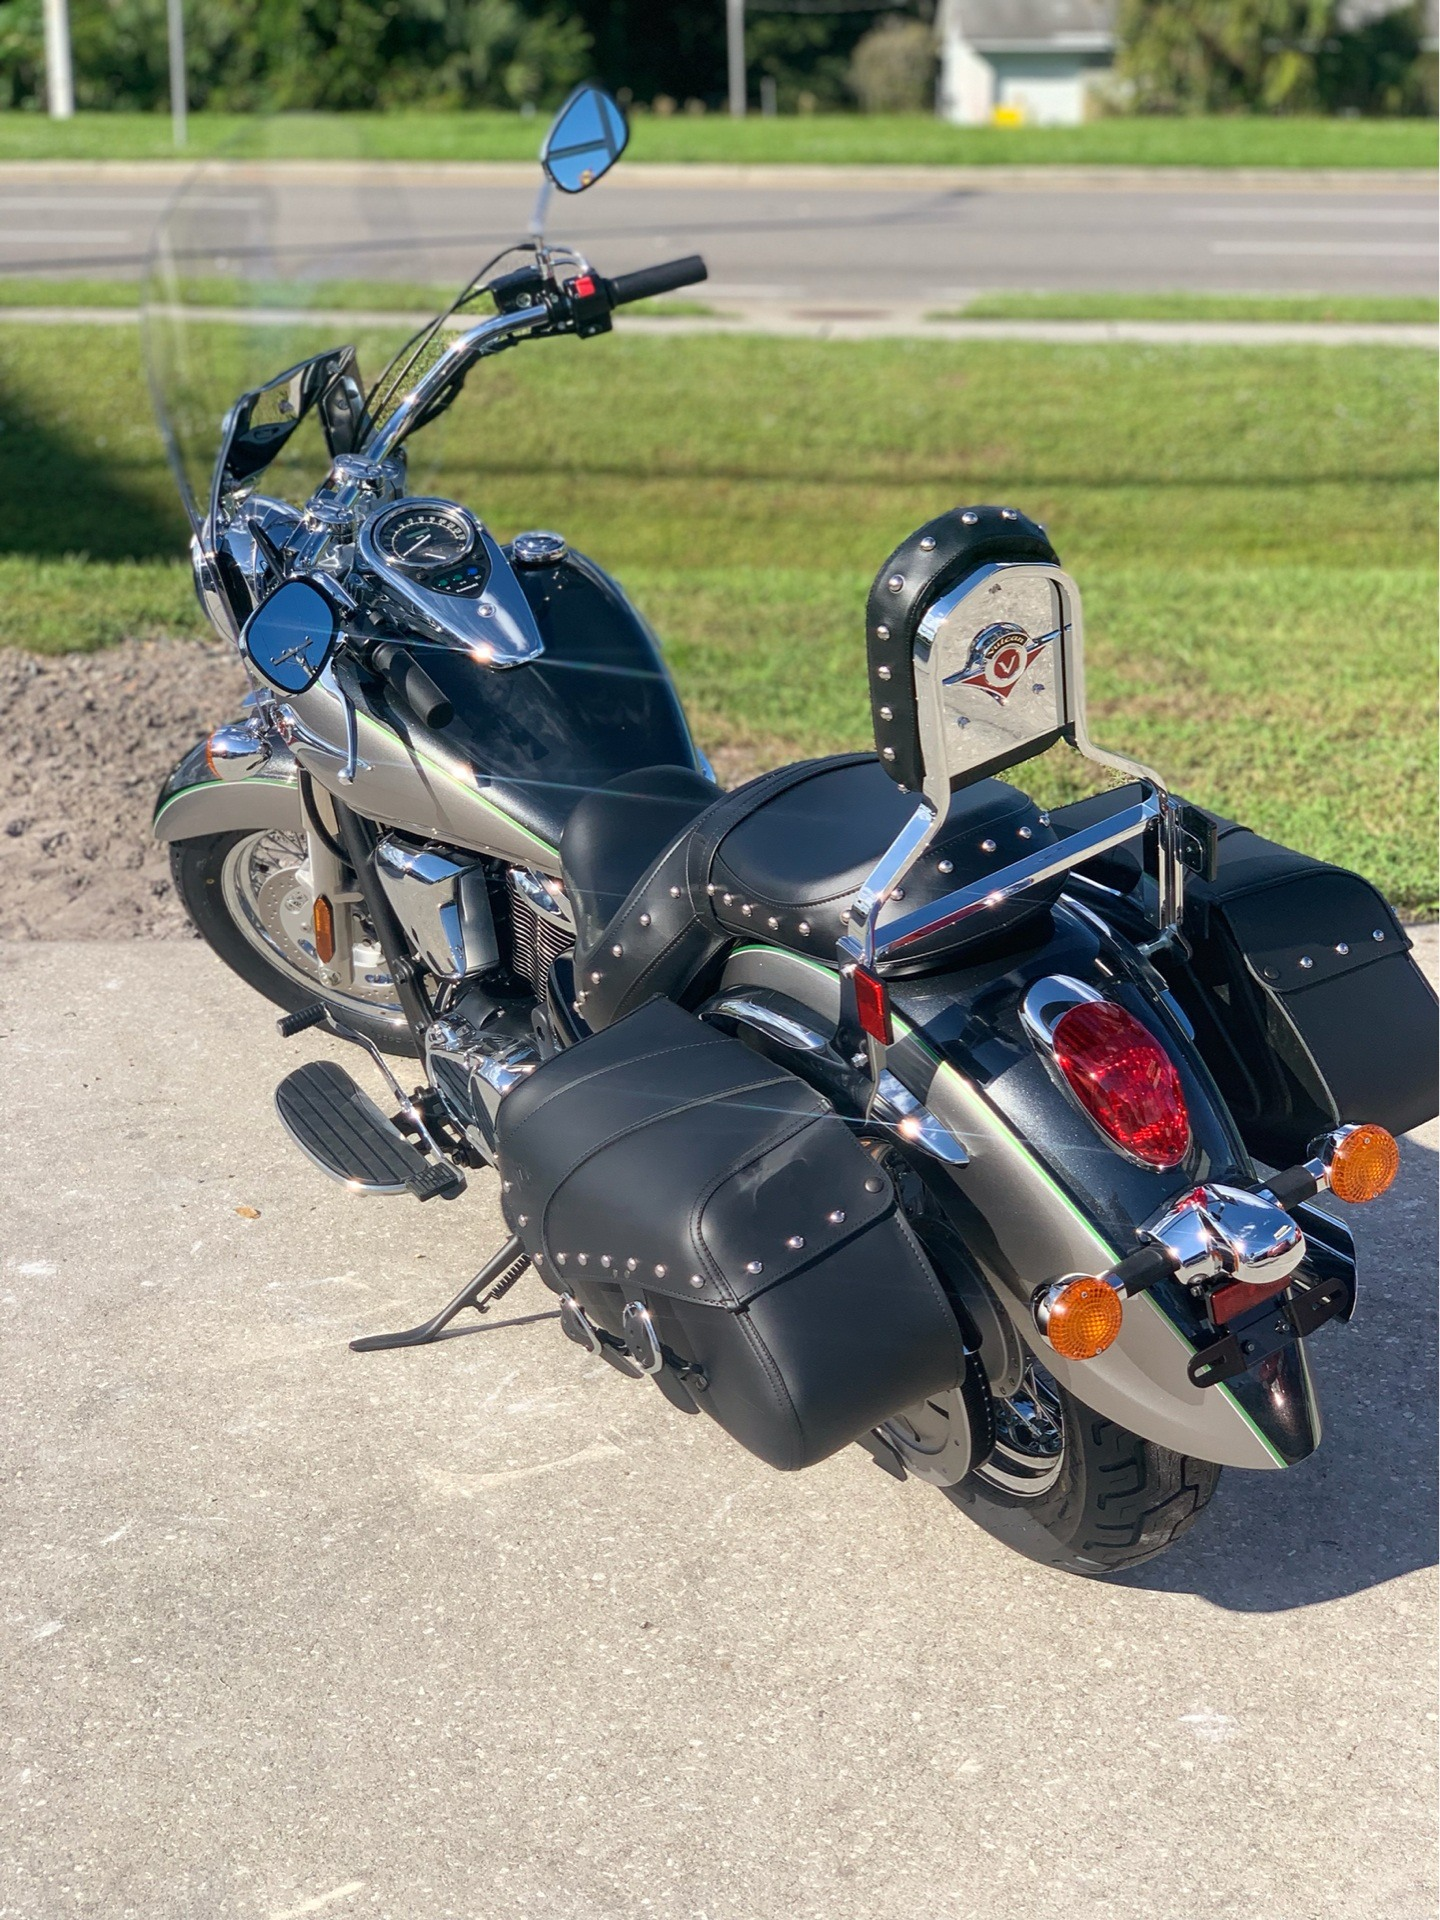 2020 Kawasaki Vulcan 900 Classic LT in Orlando, Florida - Photo 7